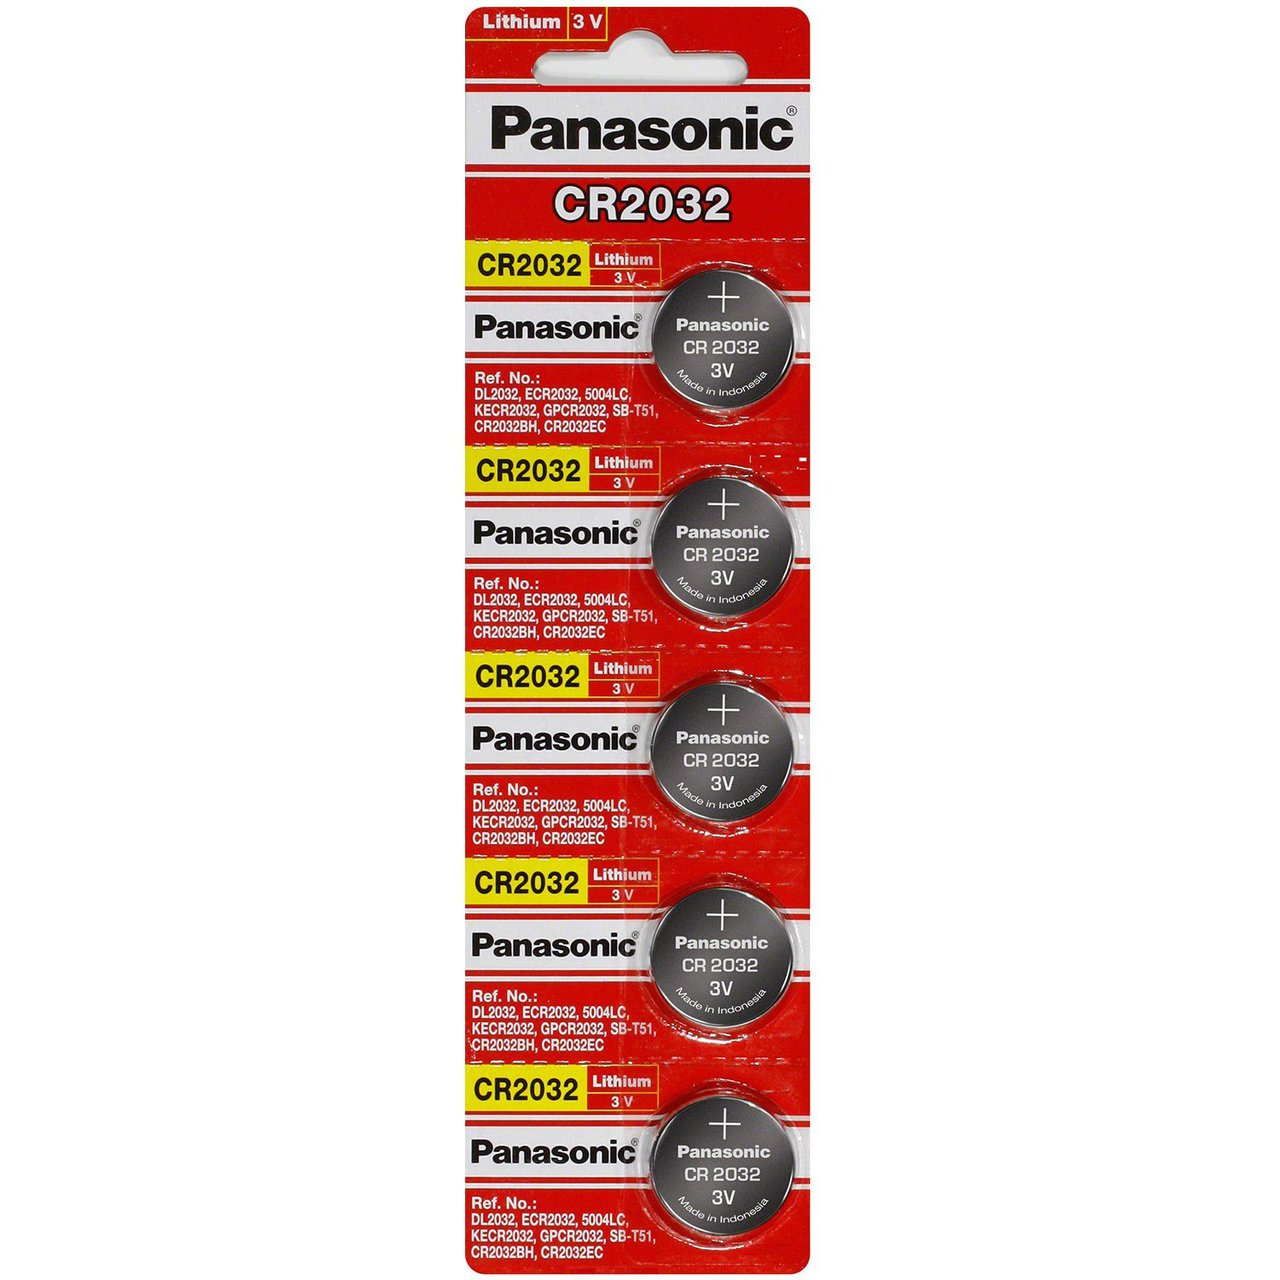 Panasonic Cr2032 3v Lithium Coin Battery 5 Pack Free